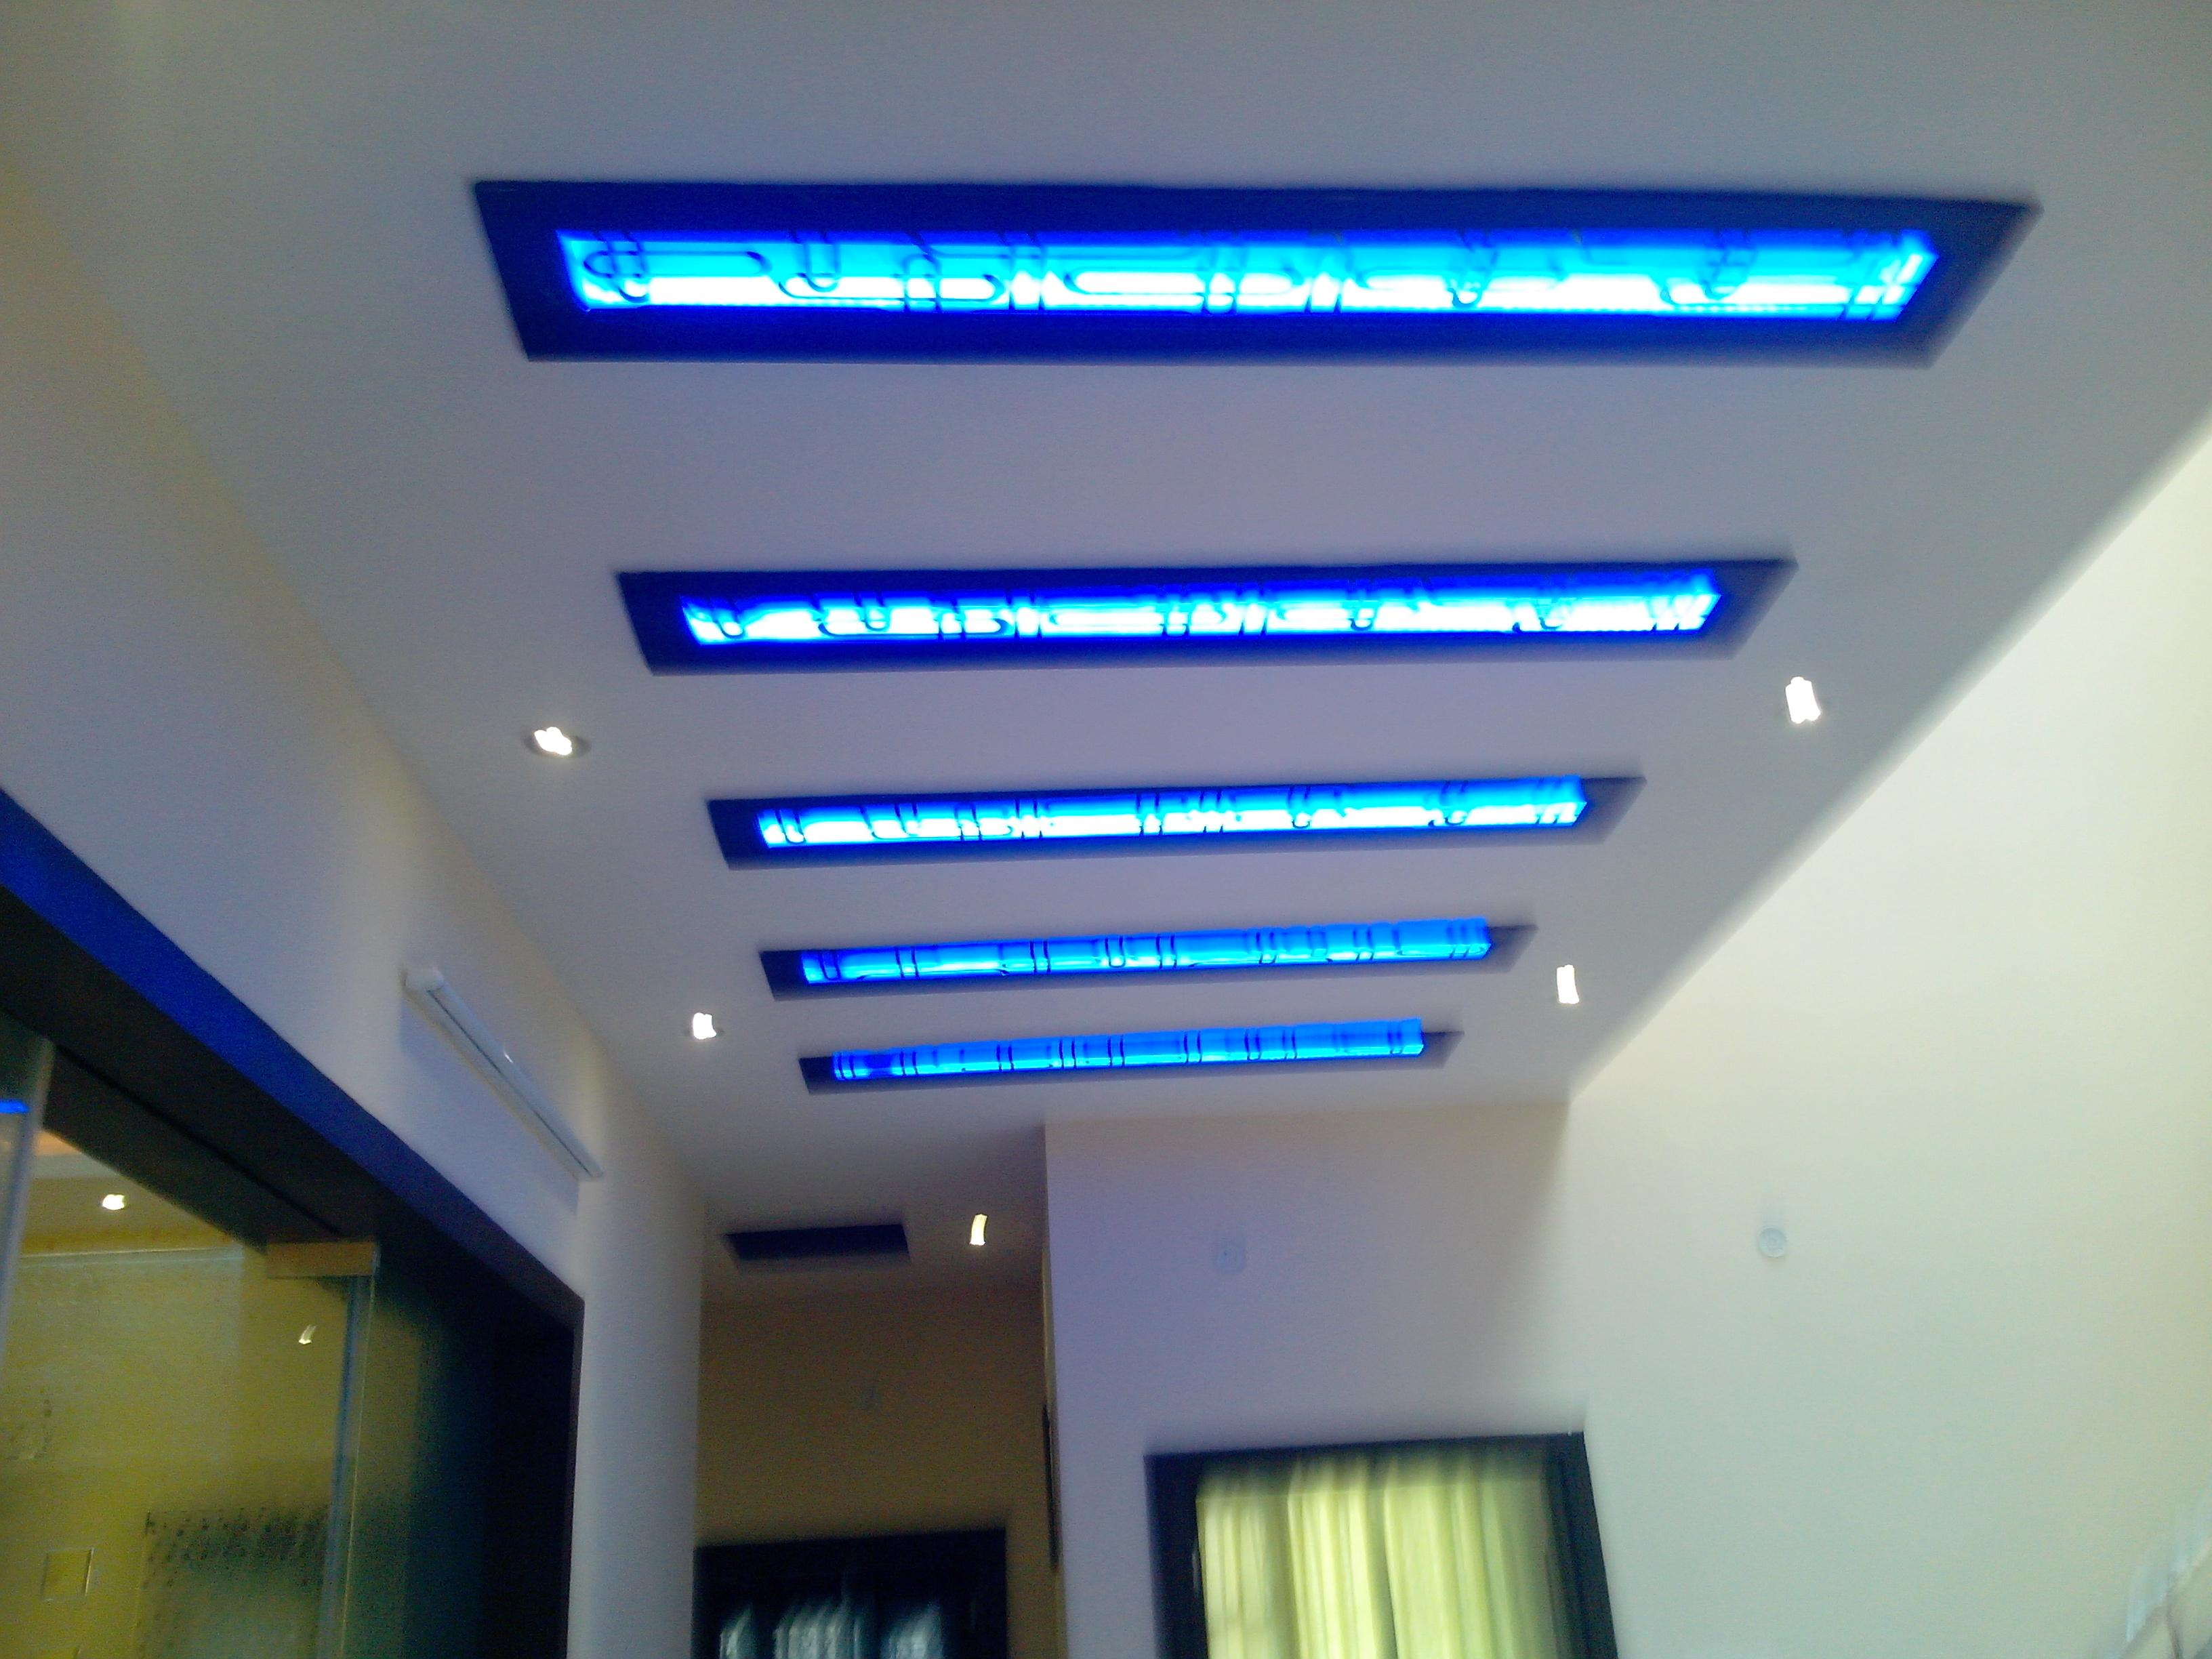 Ceiling Design For A Lobby Area With Blue Cove Lights